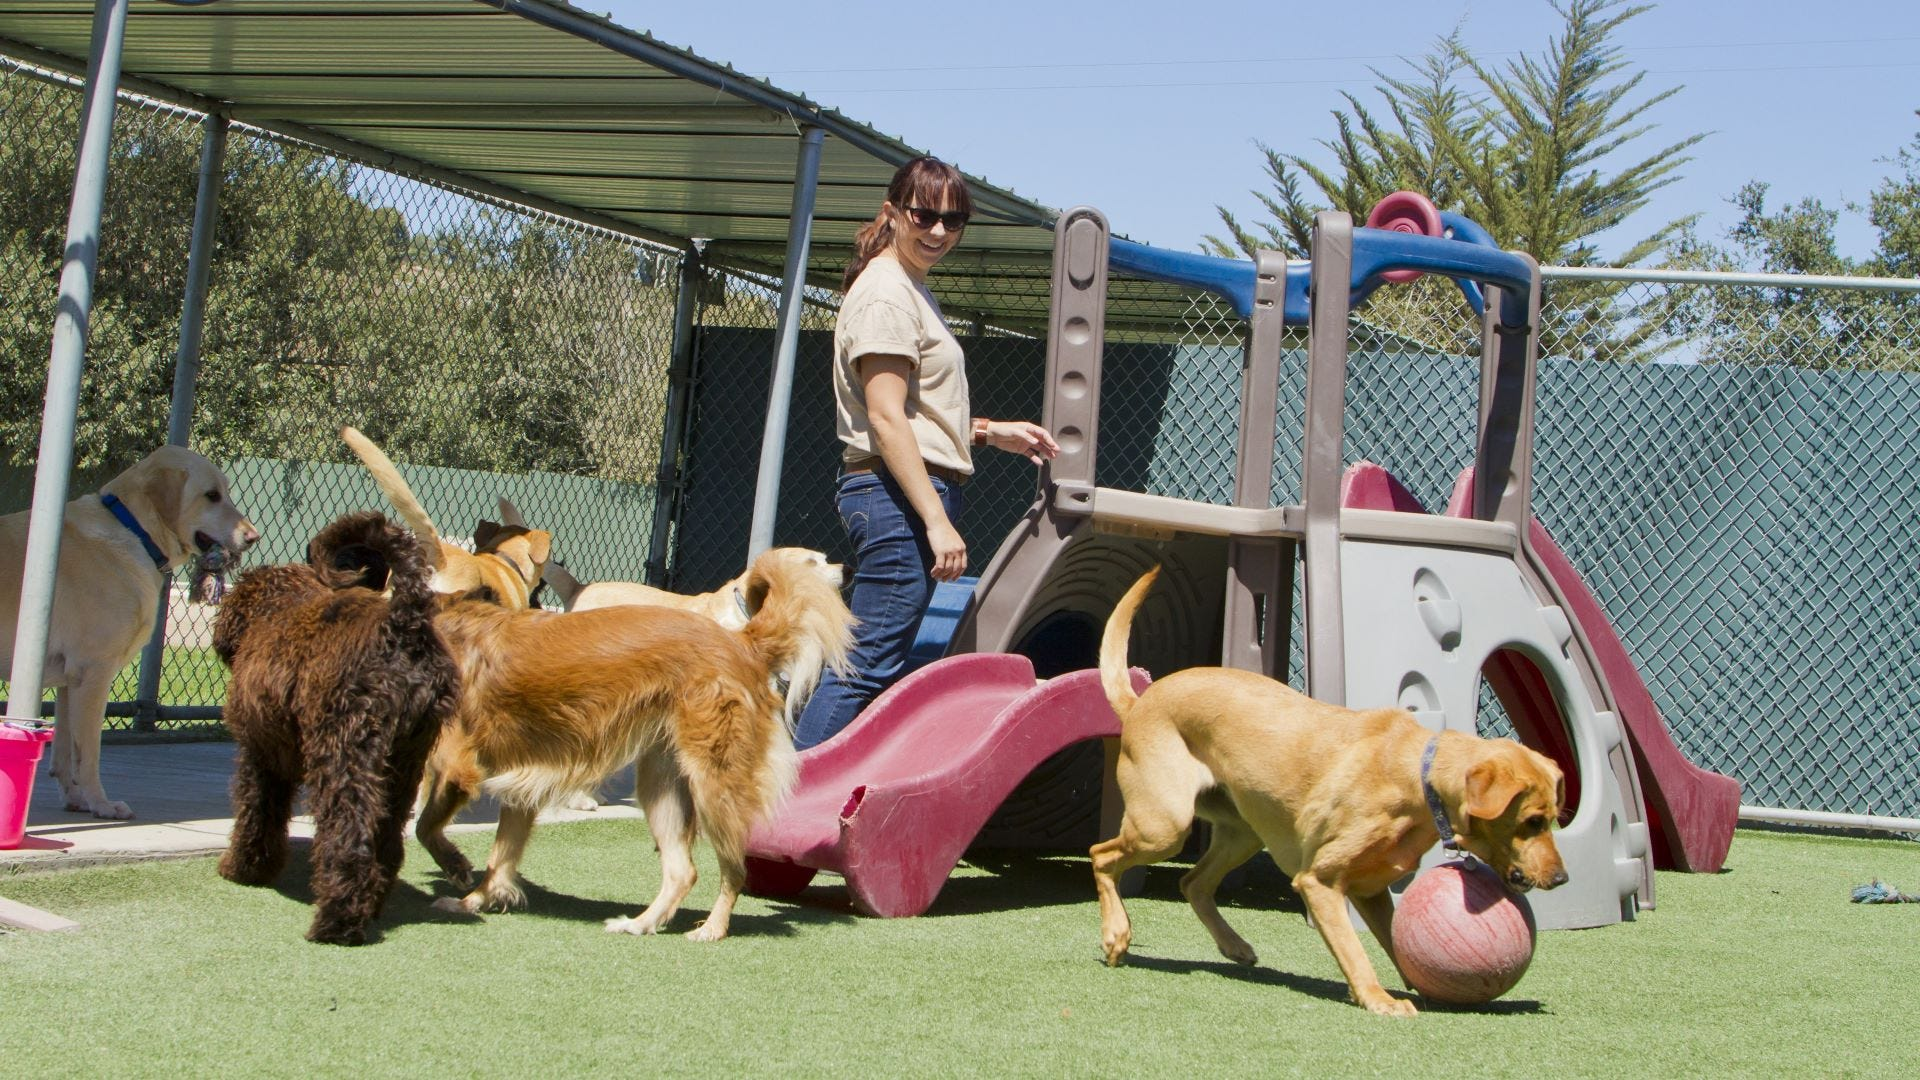 A woman supervising a group of dogs playing at a kennel.